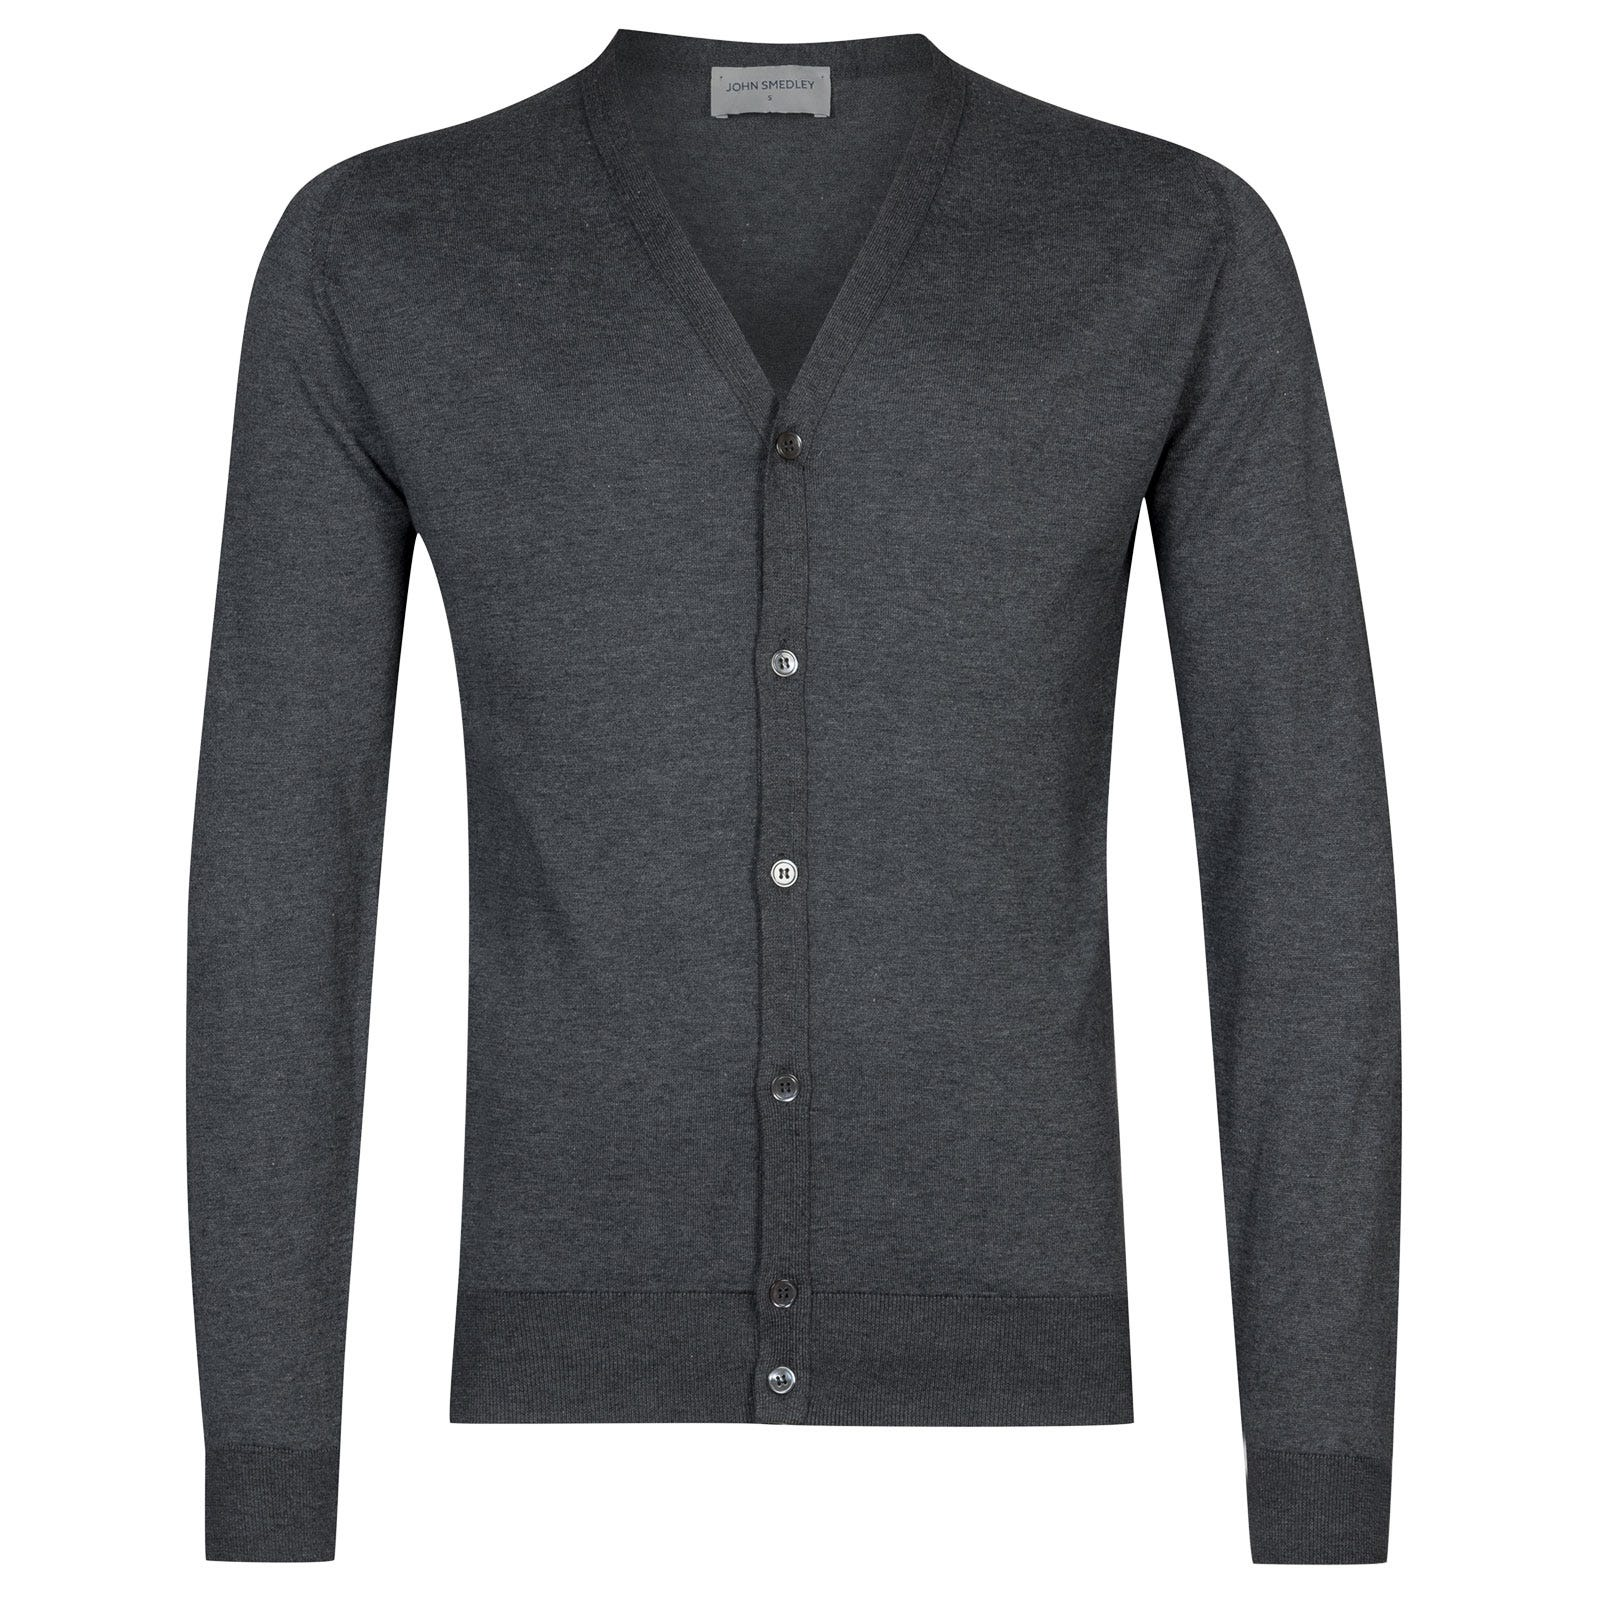 John Smedley whitchurch Sea Island Cotton Cardigan in Charcoal-L